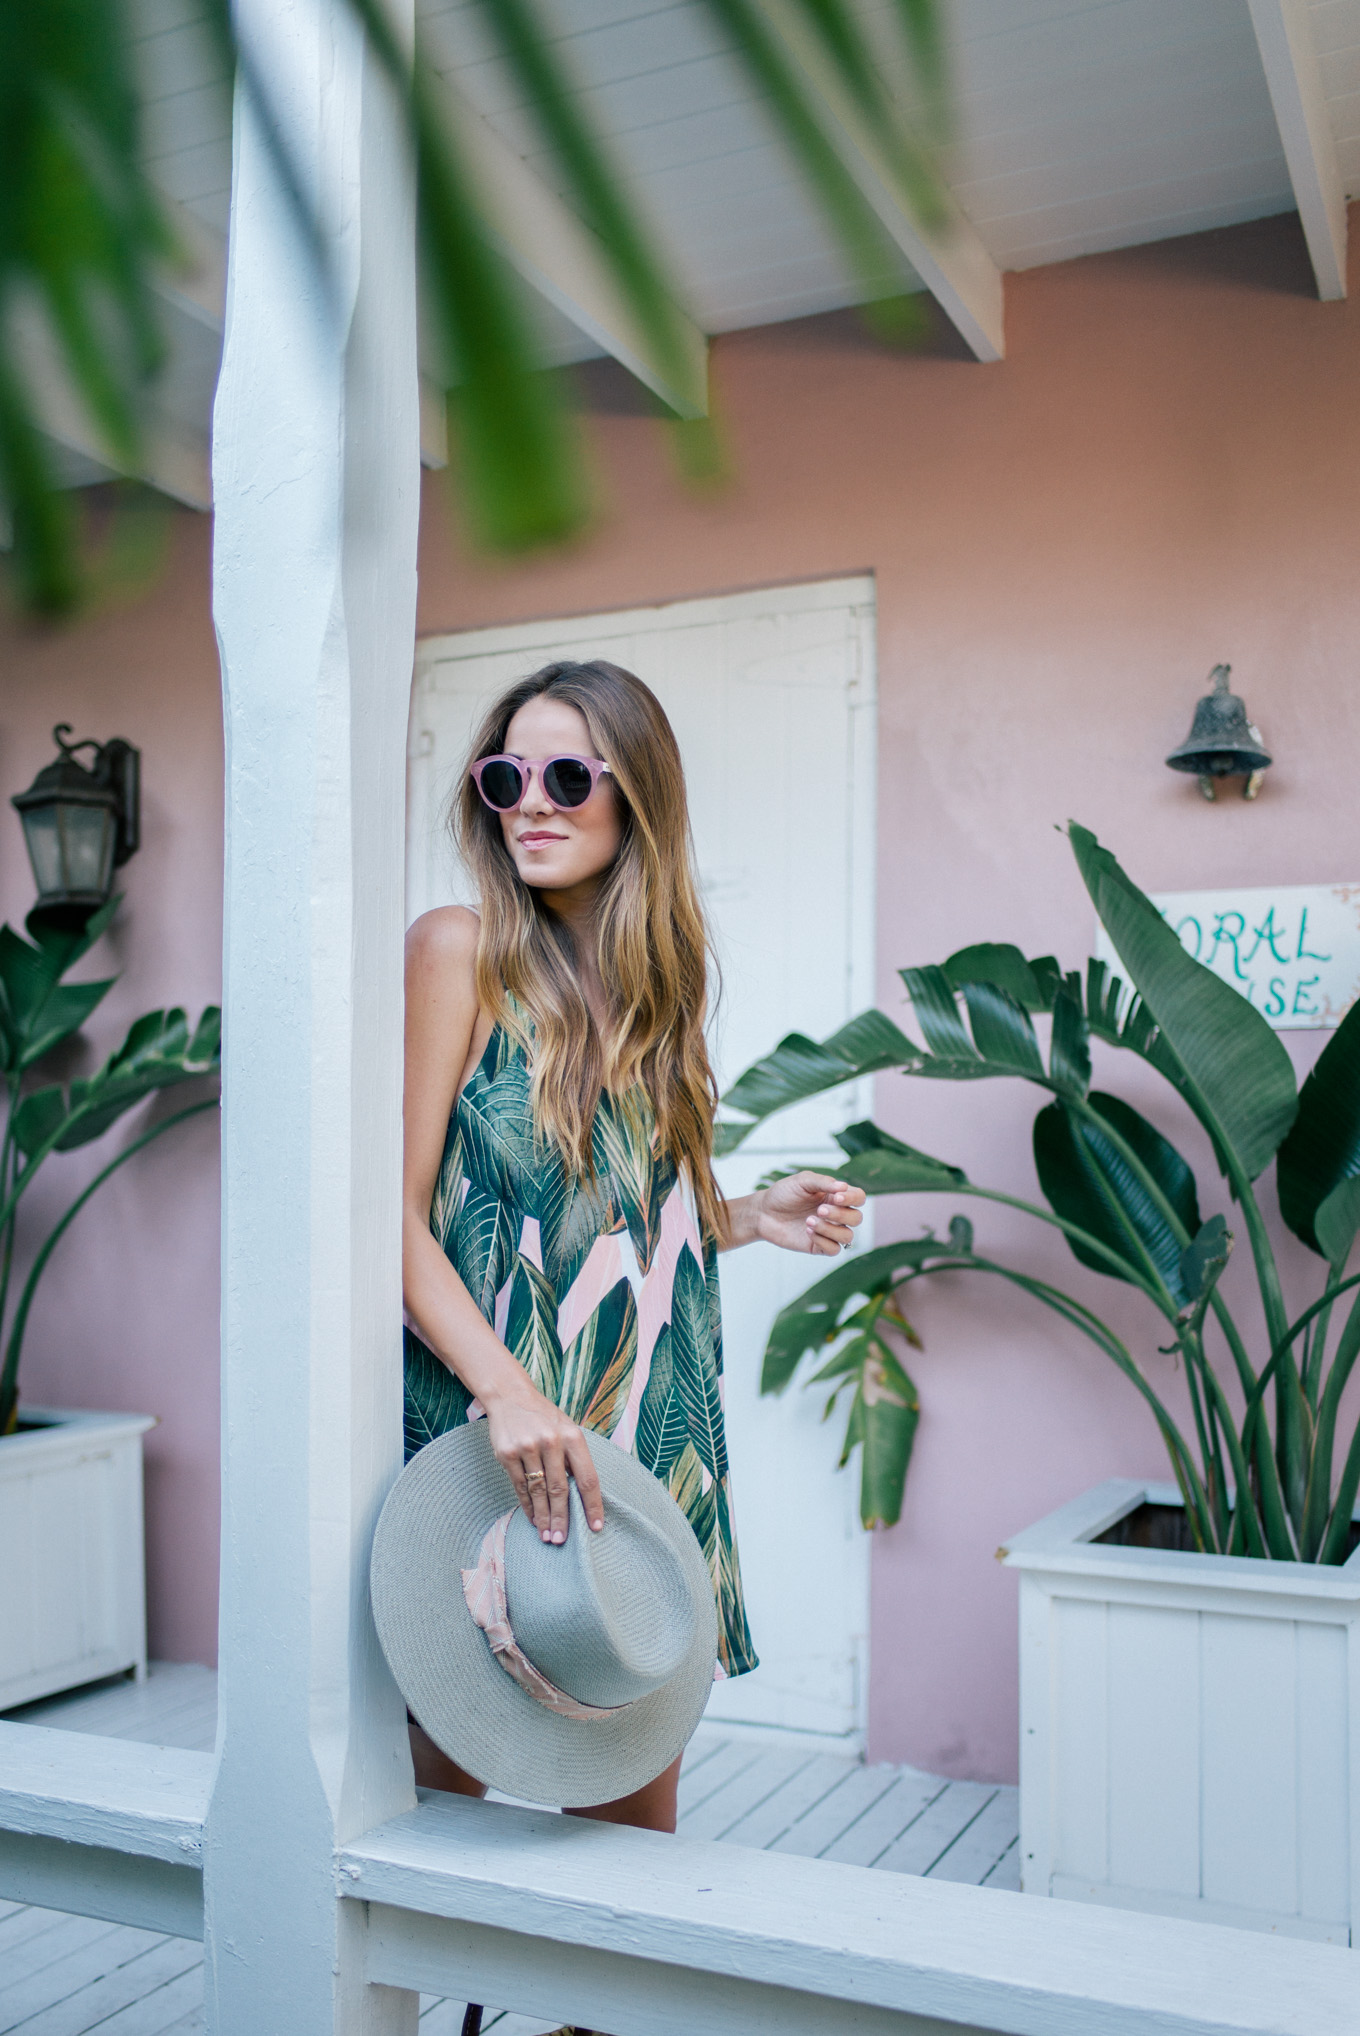 gmg-pink-and-palm-print-1007321